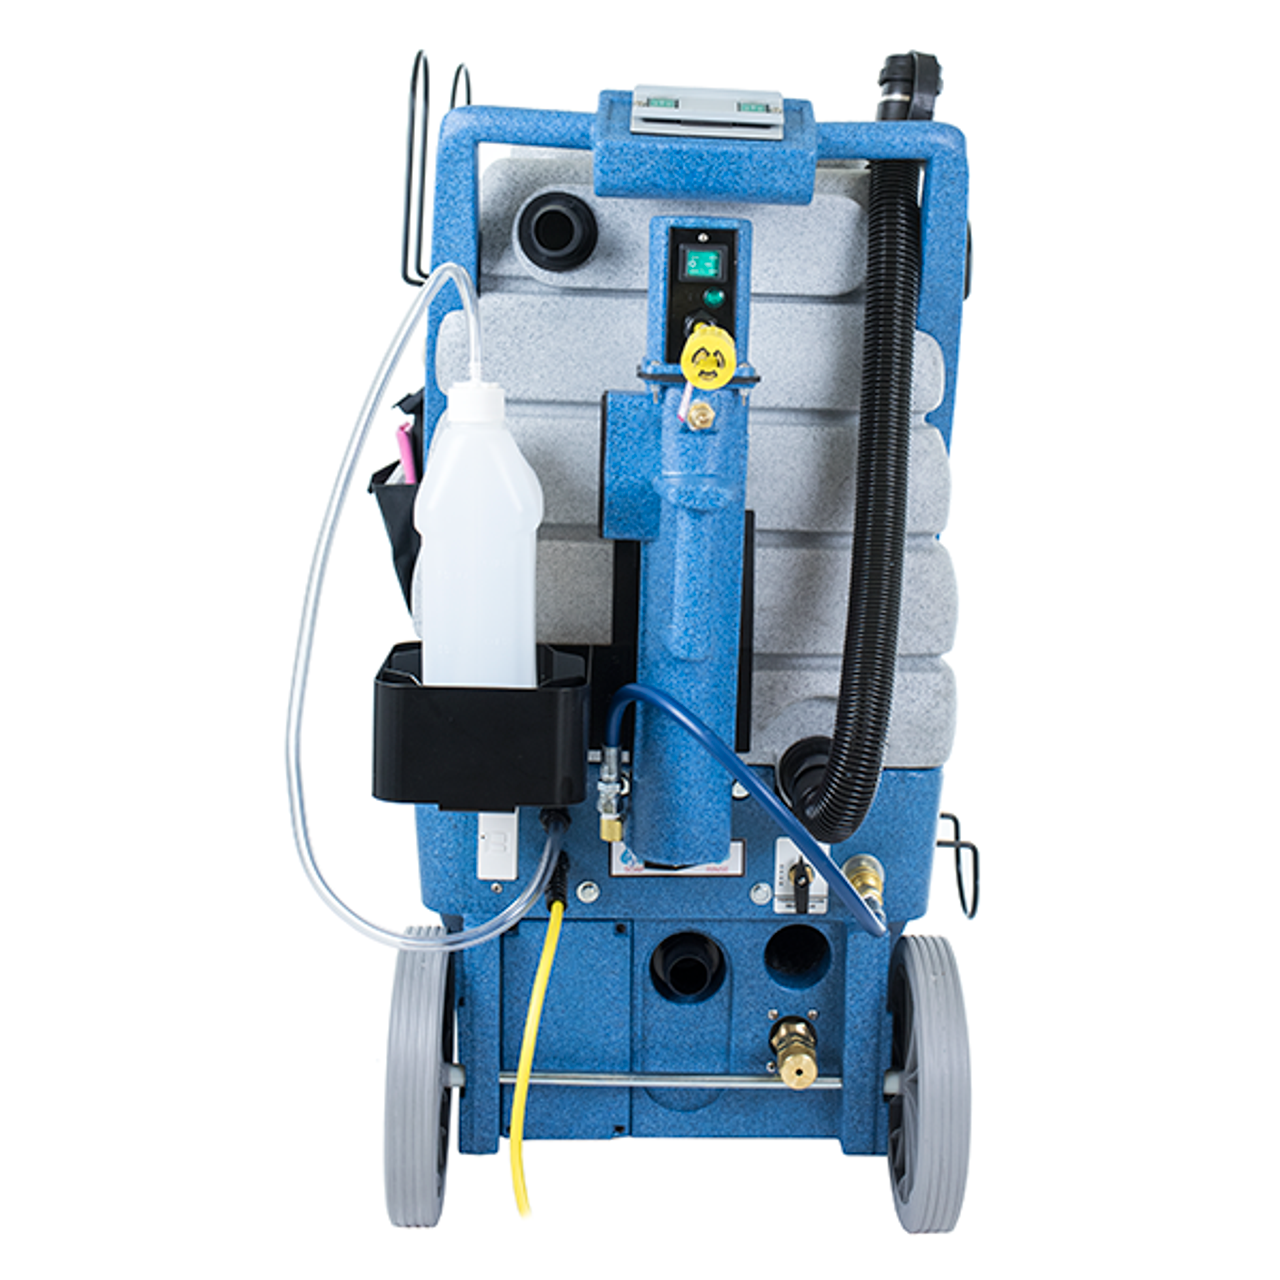 Built-in chemical metering system and onboard GFCI.